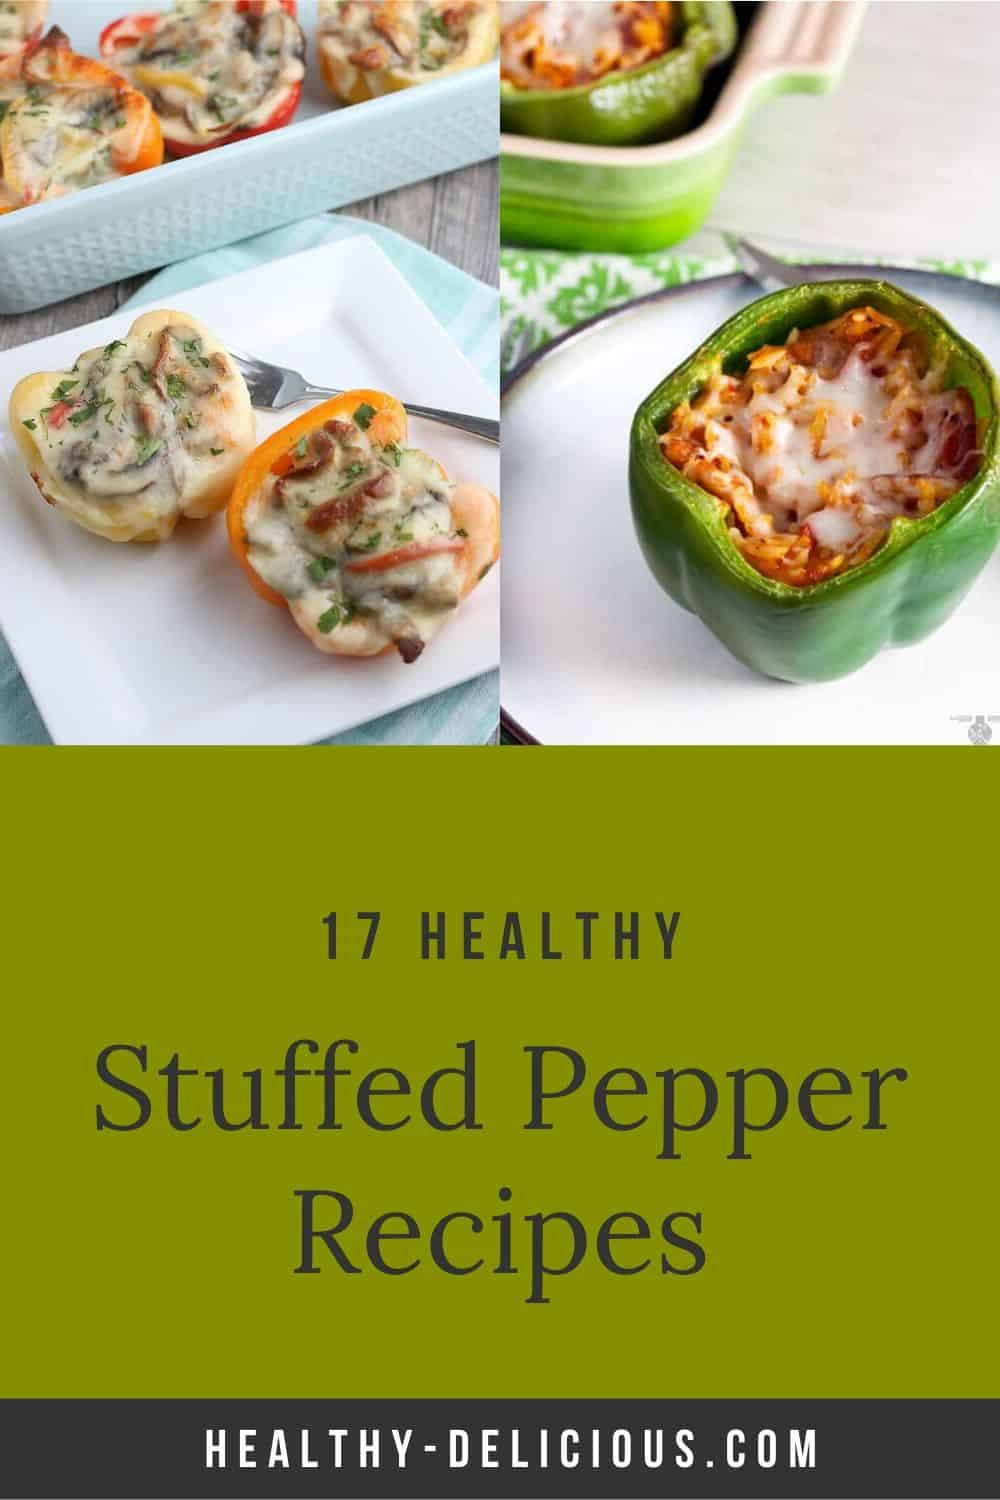 17 healthy stuffed peppers recipes, from classic Italian stuffed peppers to enchilada stuffed peppers to low carb stuffed pepper soup made with cauliflower rice via @HealthyDelish